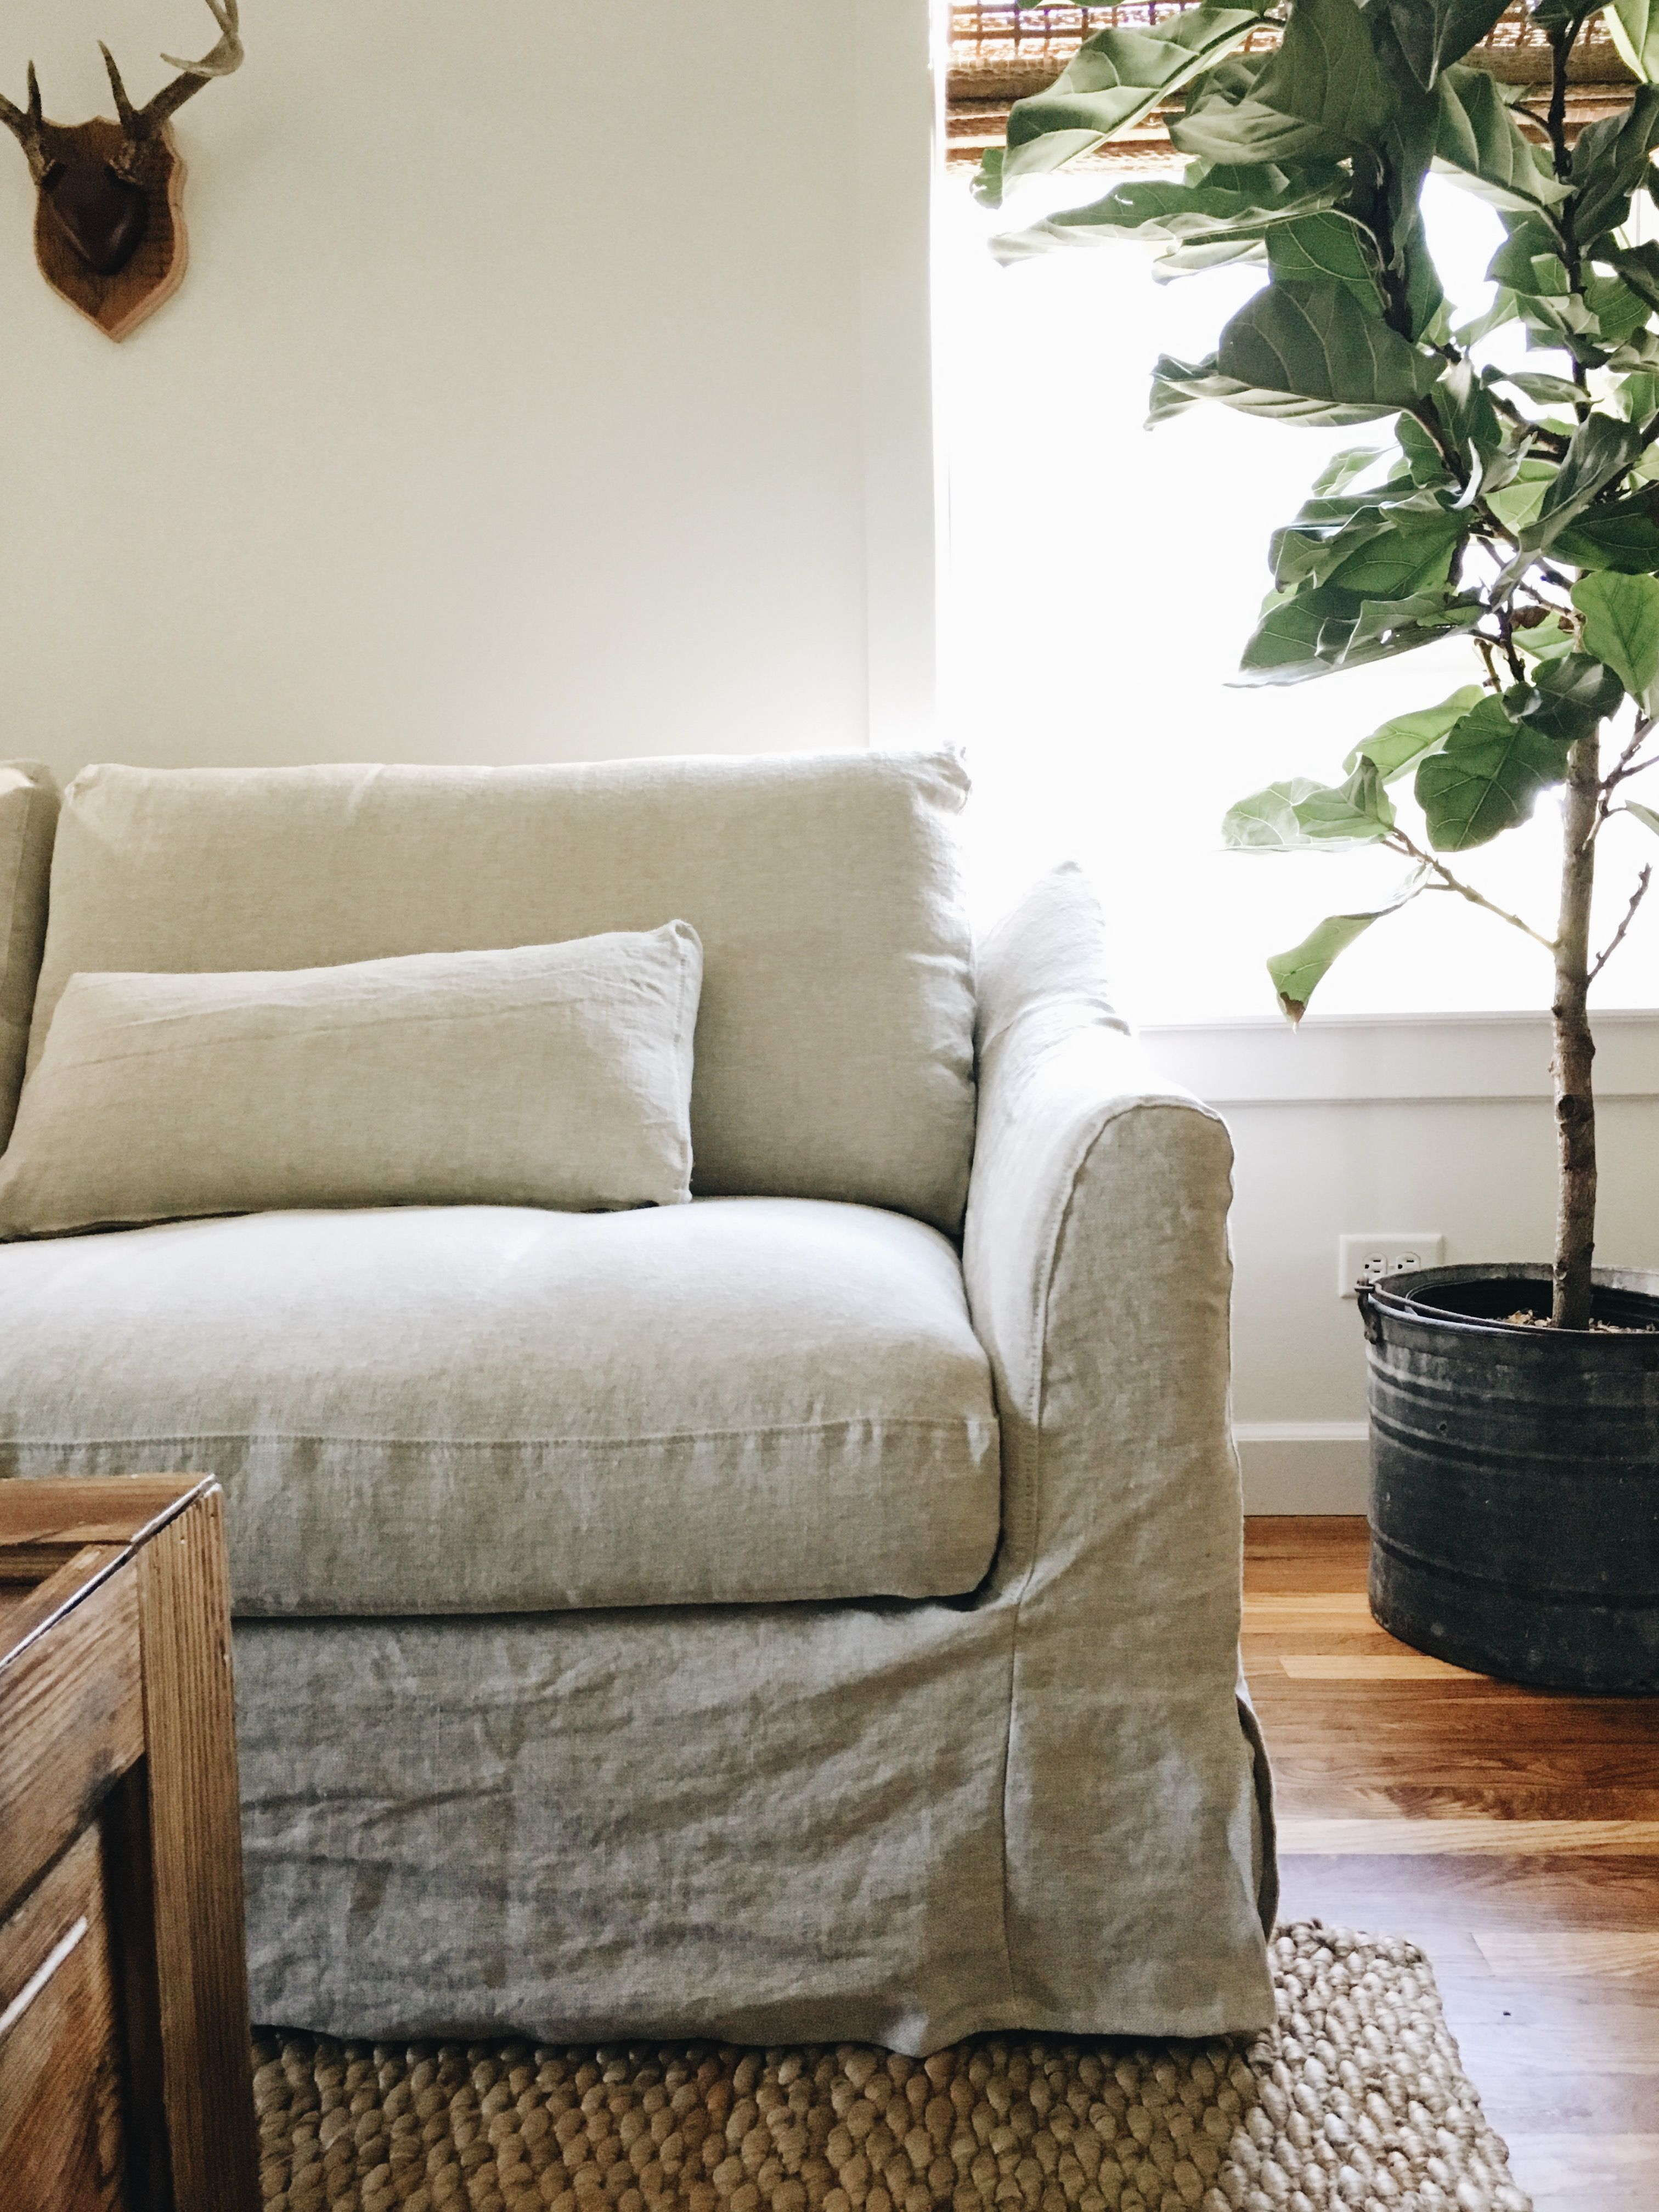 ikea karlstad white leather sofa bed auckland nz rustic shabby chic vibes | the farmhouse blog ...